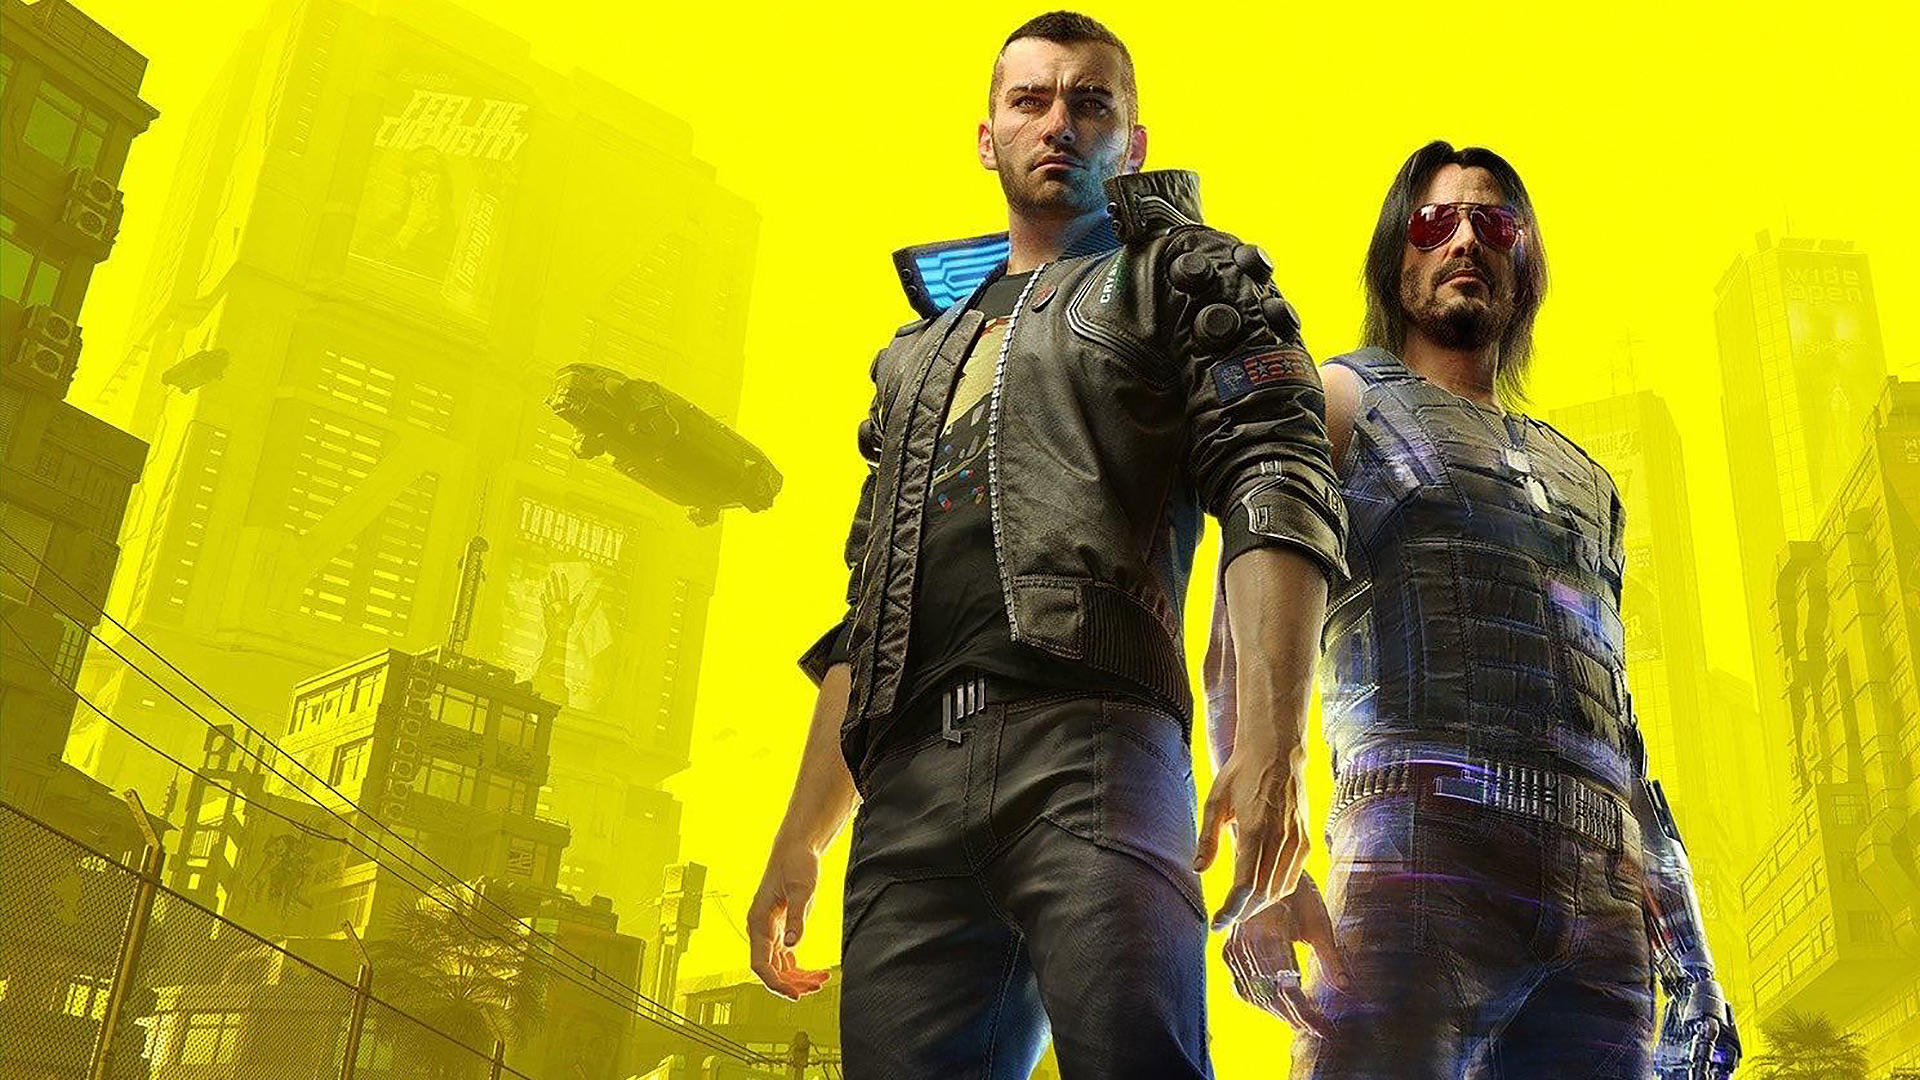 Cyberpunk 2077 is getting a huge strategy guide at launch